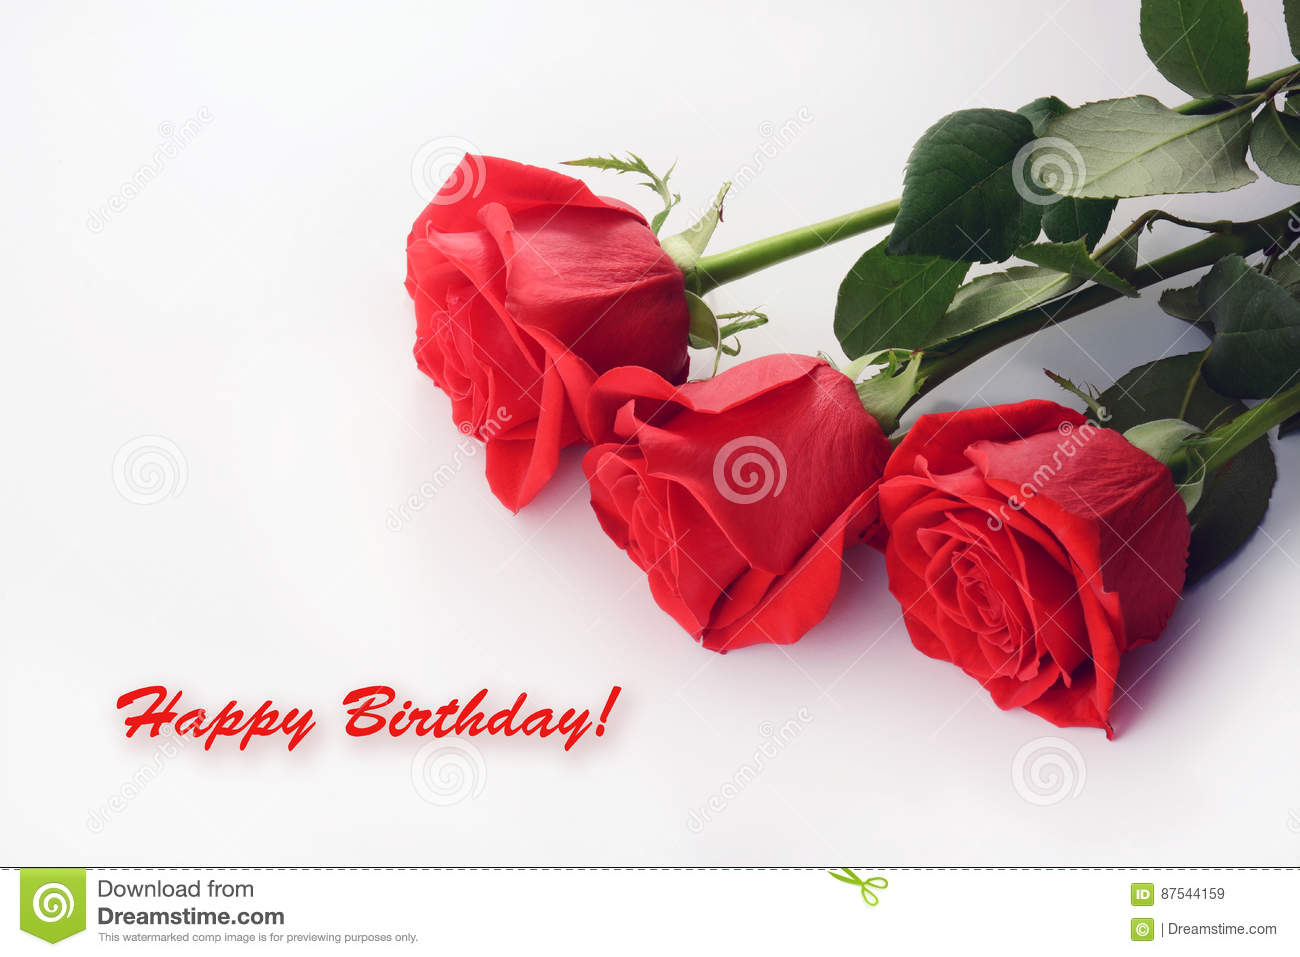 Red Roses Close Up Beautiful Bouquet Happy Birthday Card